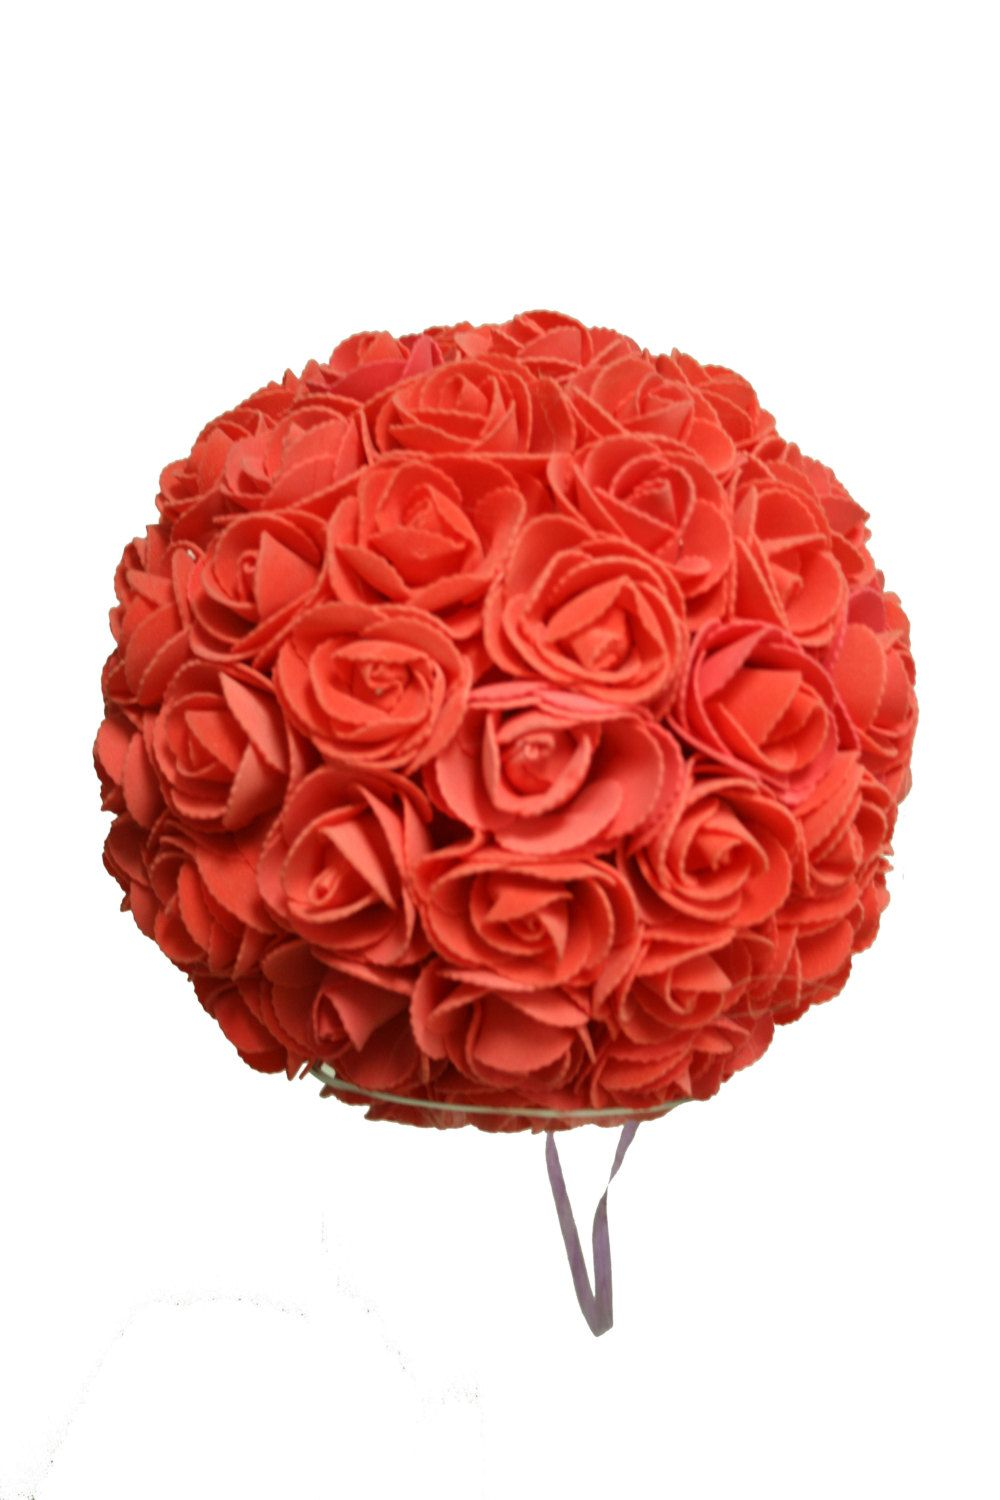 9 Inches Orange/Coral/Lavender/Pink Rose Ball Pomander Kissing ball (USA Seller Fast Shipping) by FeatherParadise on Etsy